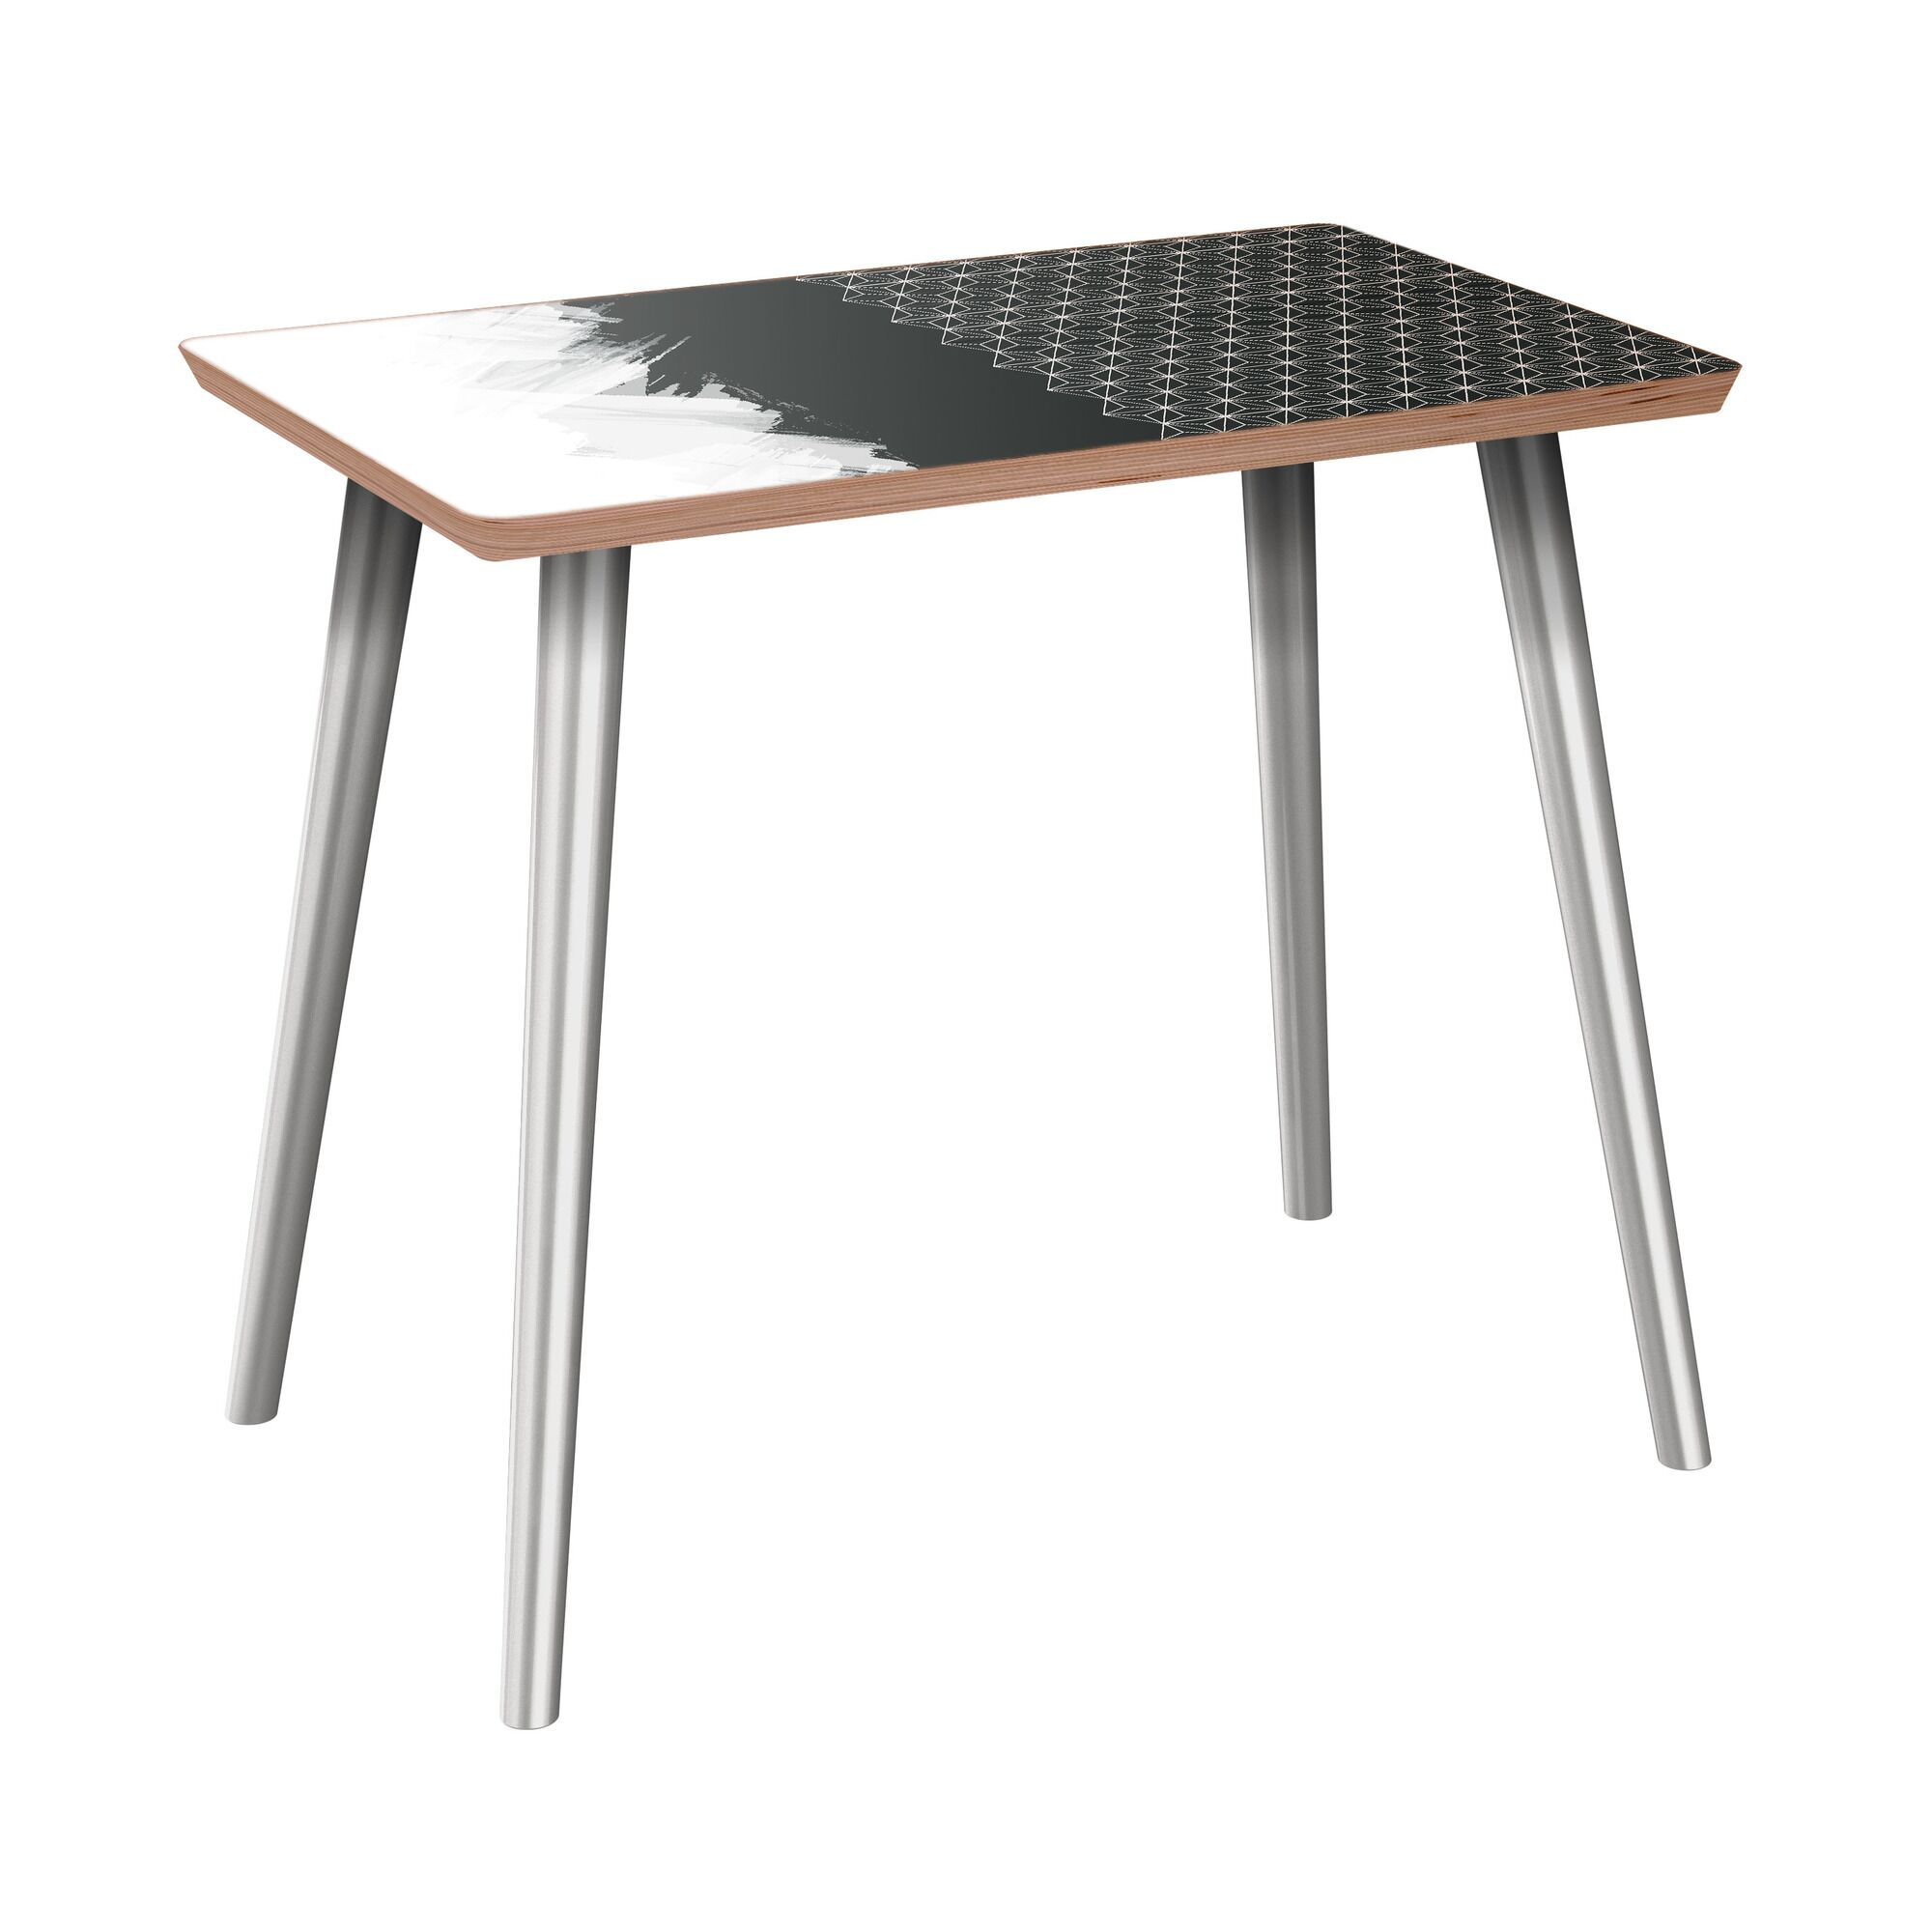 Fagundes End Table Table Base Color: Chrome, Table Top Color: Walnut